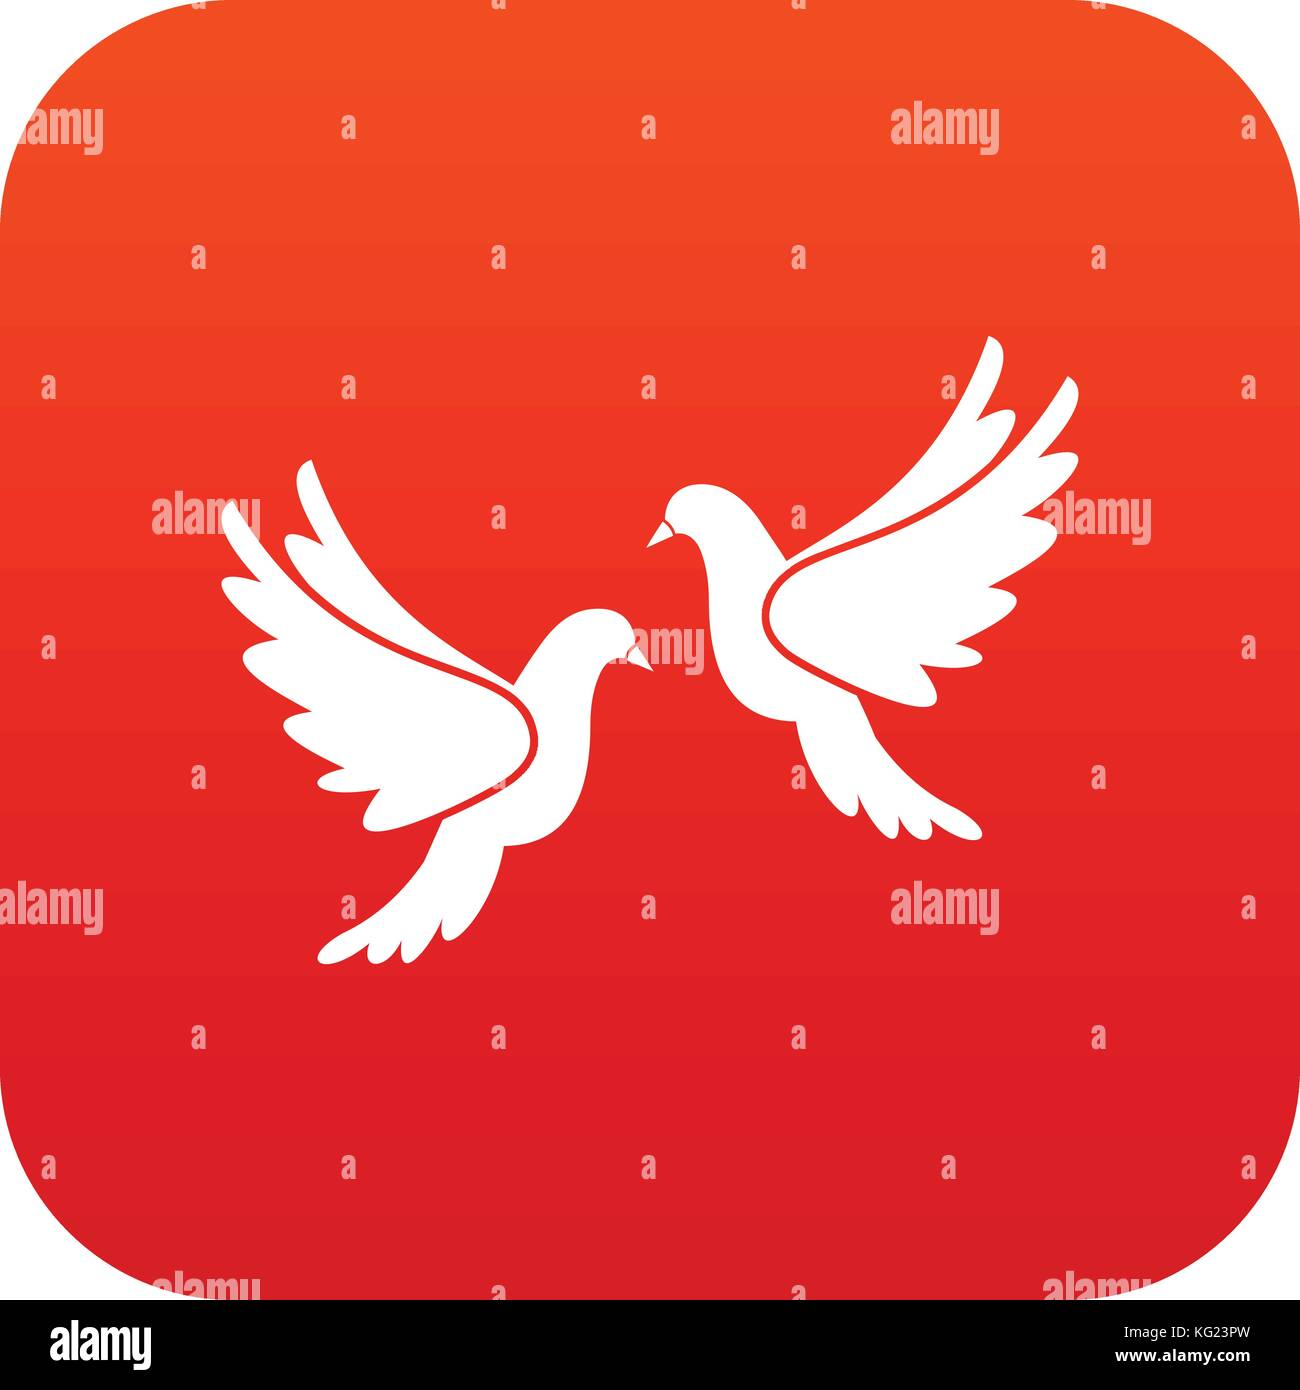 Dove Doves Pair Stock Vector Images - Alamy